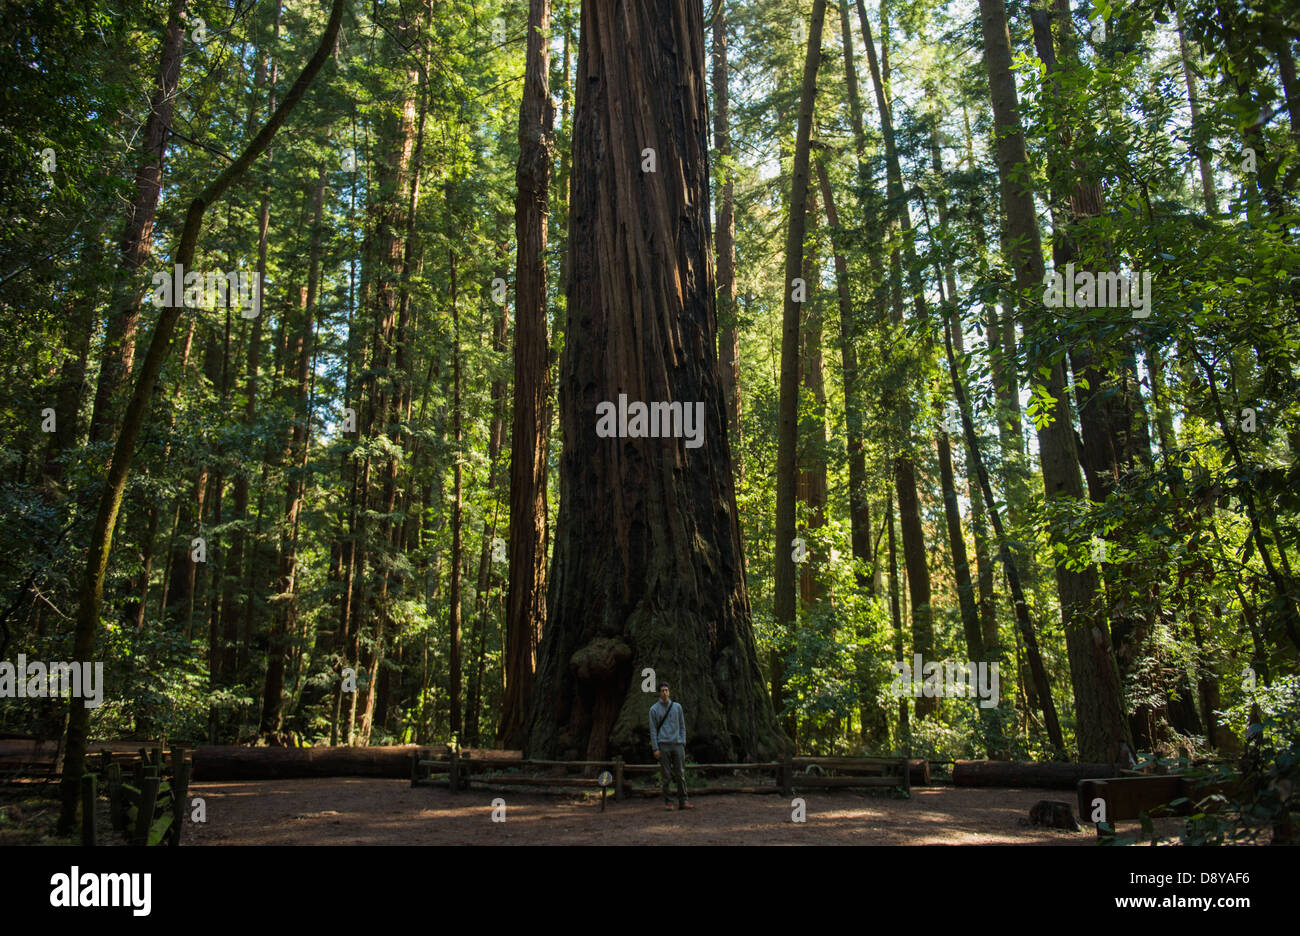 Man standing beneath redwood tree at Henry Cowell Redwoods - Stock Image